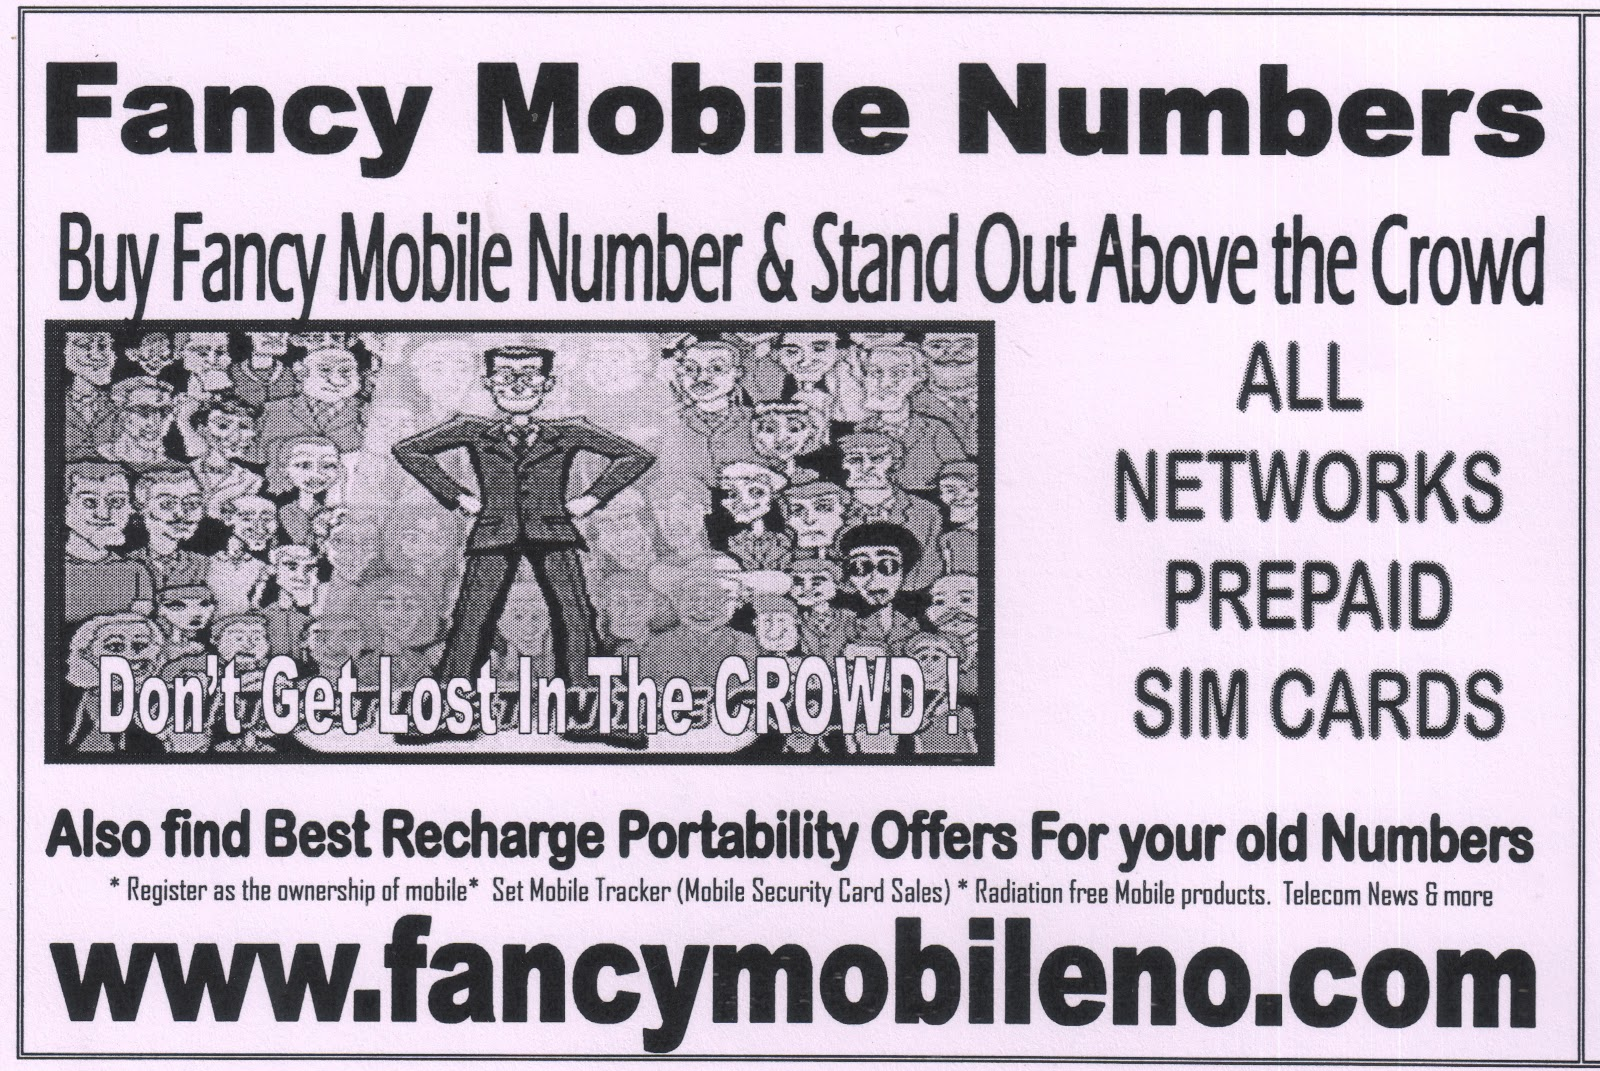 Fancy mobile numbers Hyderabad | World Social News